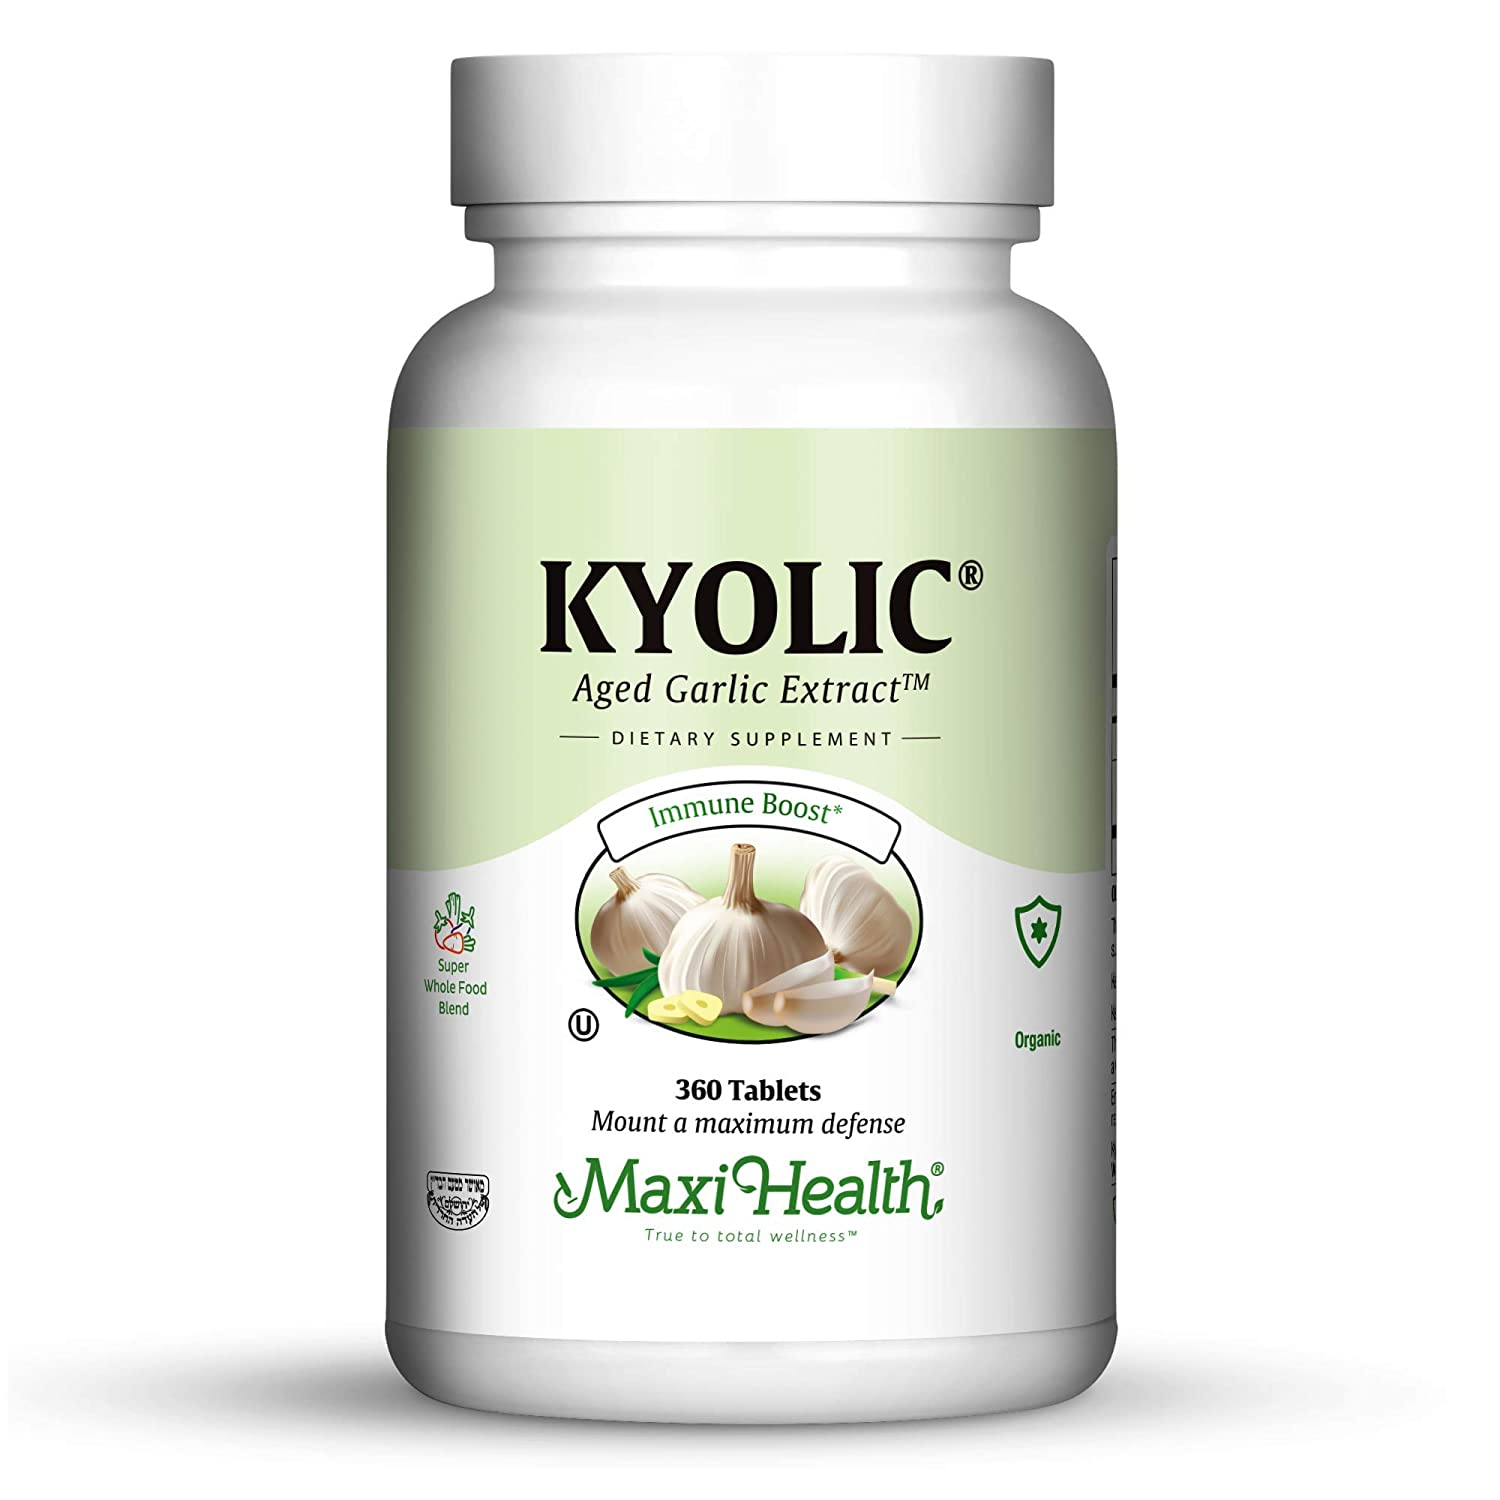 Maxi Health Kyolic 400 Aged Garlic Extract – Immune Booster, 360 Extra Strength Tablets, Kosher